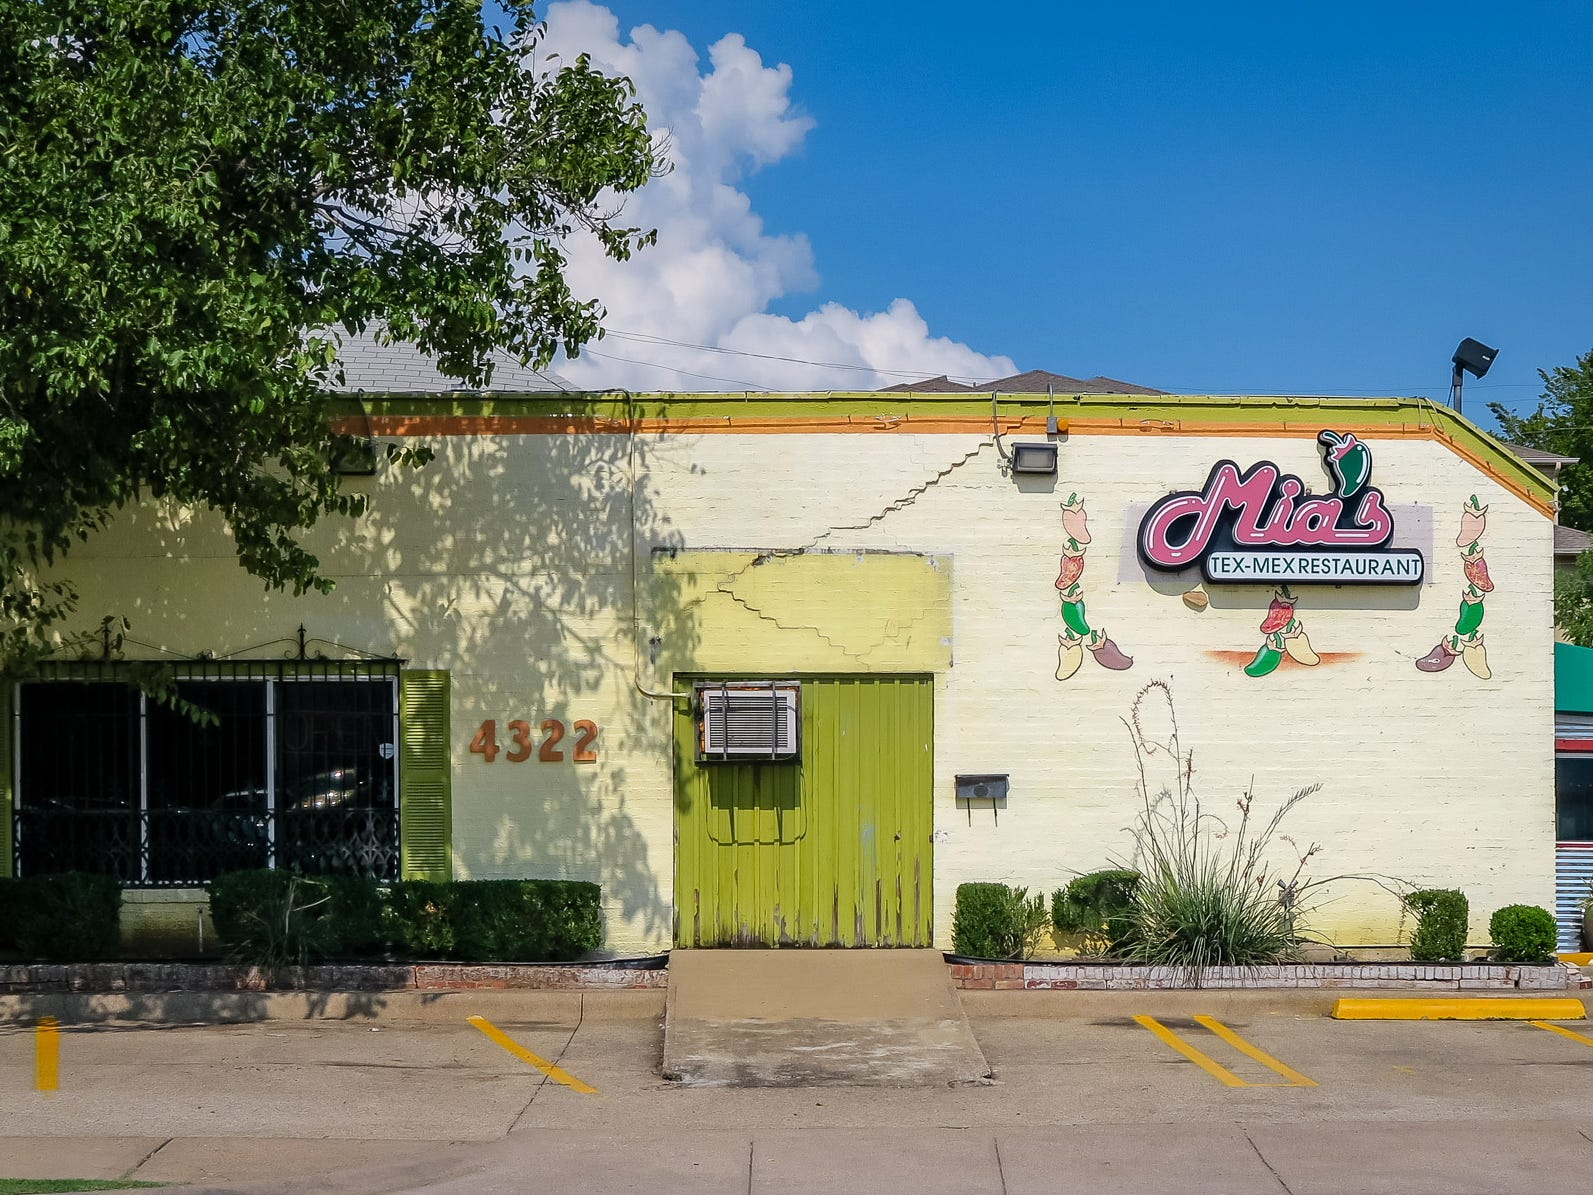 "Mia's is often regarded as the epicenter of Tex-Mex in the city. It was among the first to locate near a tony neighborhood with few immigrants but serve humble food like stuffed poblano pepper ""chile rellenos,"" brisket tacos and quesadillas to Dallas Cowboys players, movie stars and local celebrities. Former Mia's employees have gone on to open popular Tex-Mex restaurants of their own, including Mesero, Mi Cocina and Avila's."